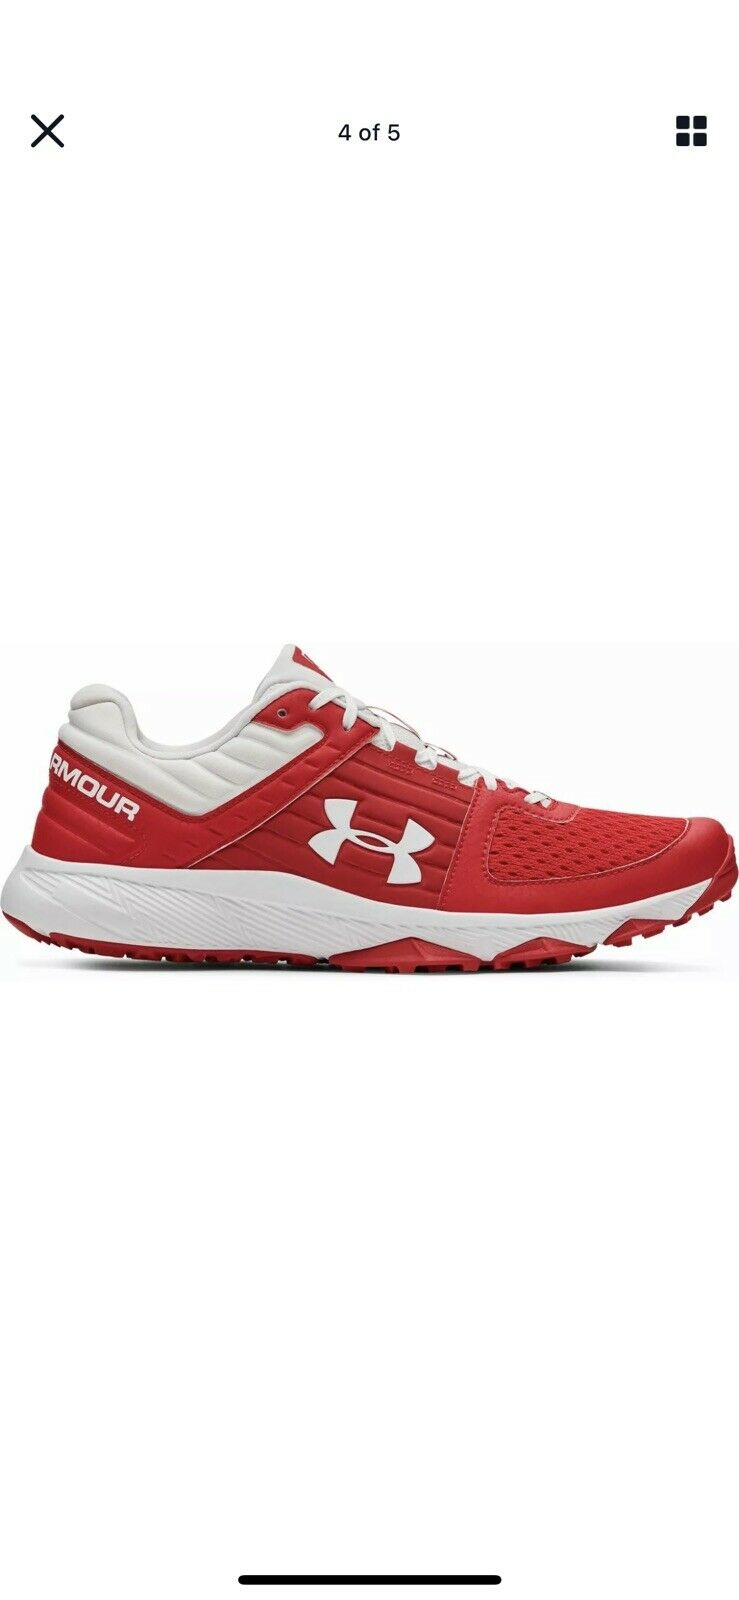 Under Armour Yard Faible Formateur Baseball Chaussure Homme 9 Blue Turf Cleat 3000356